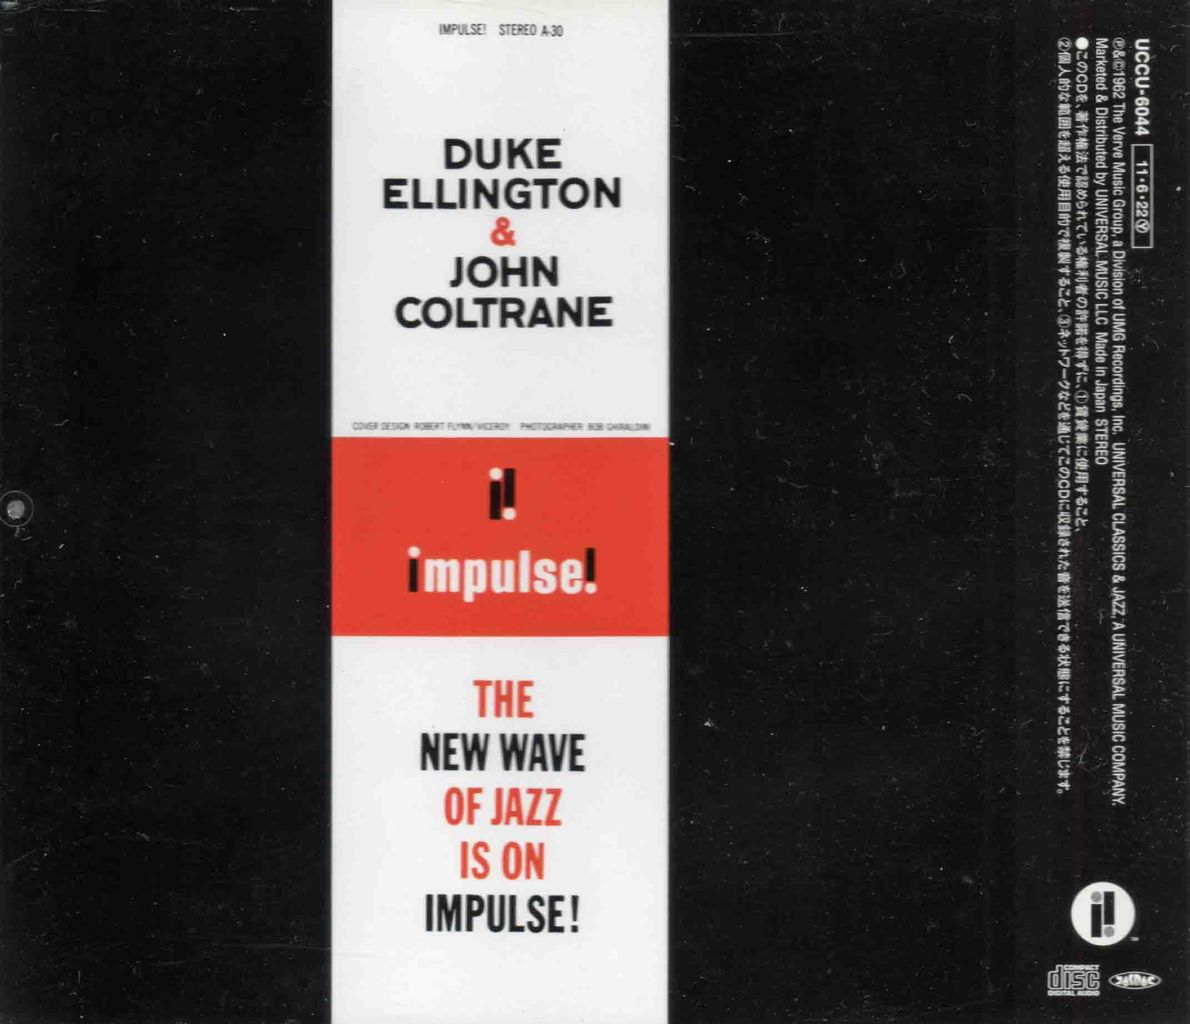 DUKE ELLINGTON & JOHN COLTRANE-2